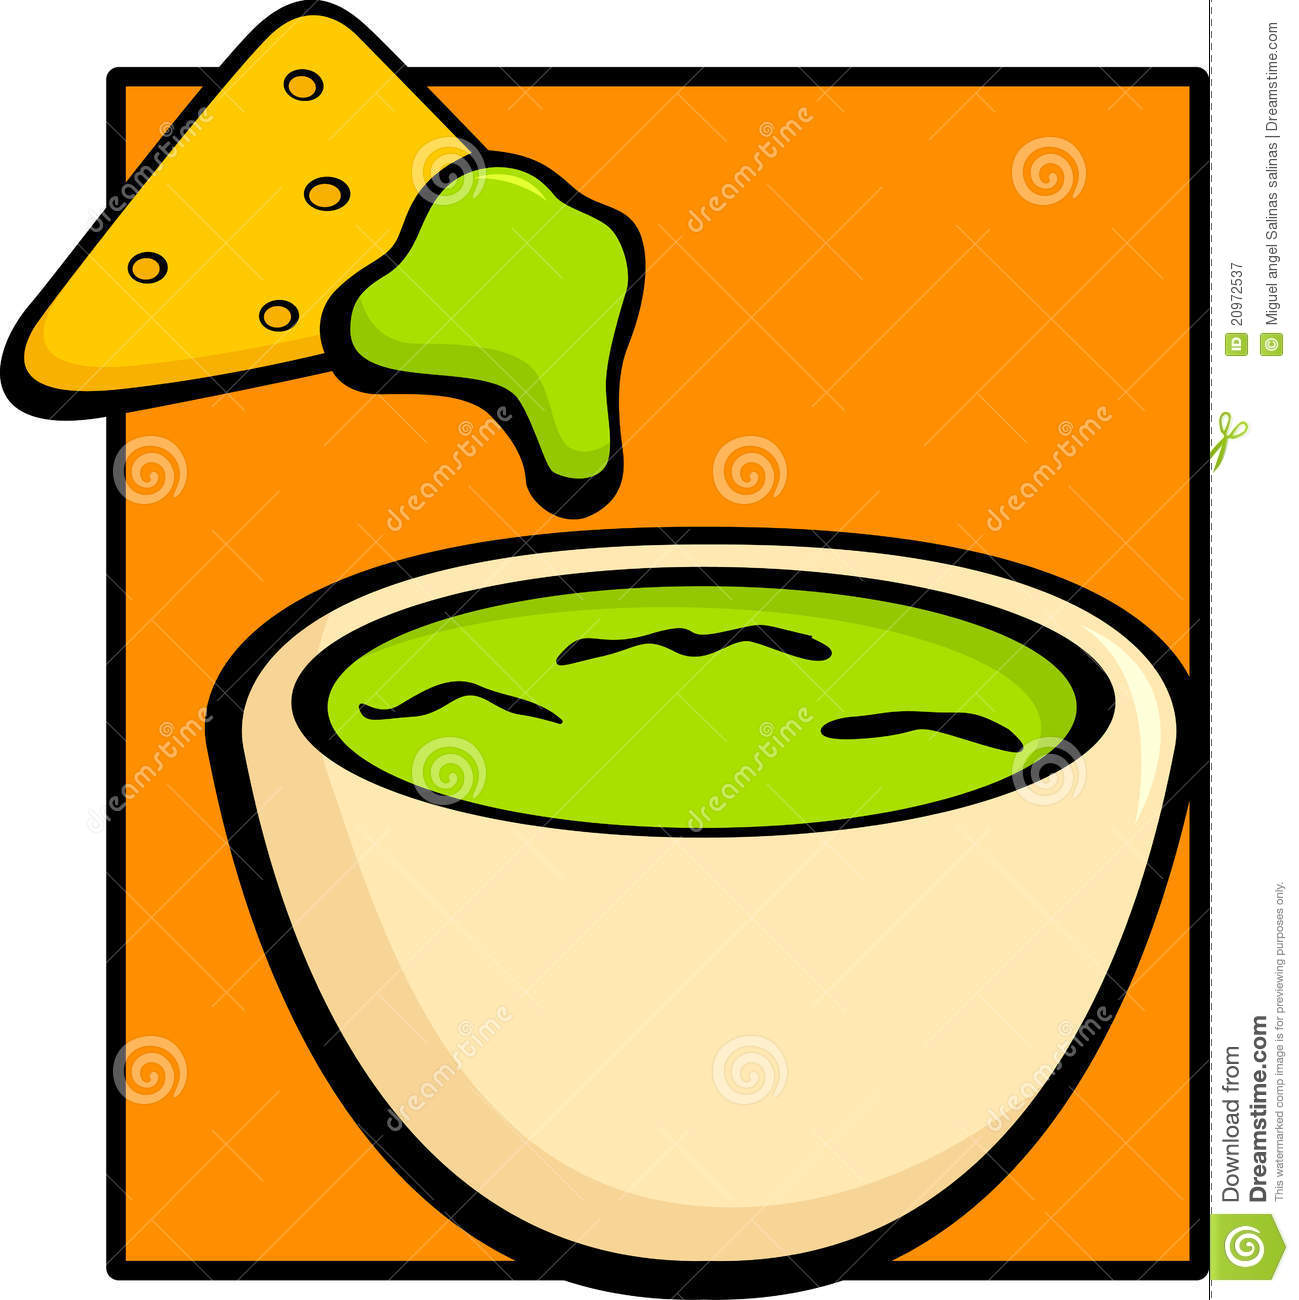 Tortilla panda free images. Chips clipart corn chip